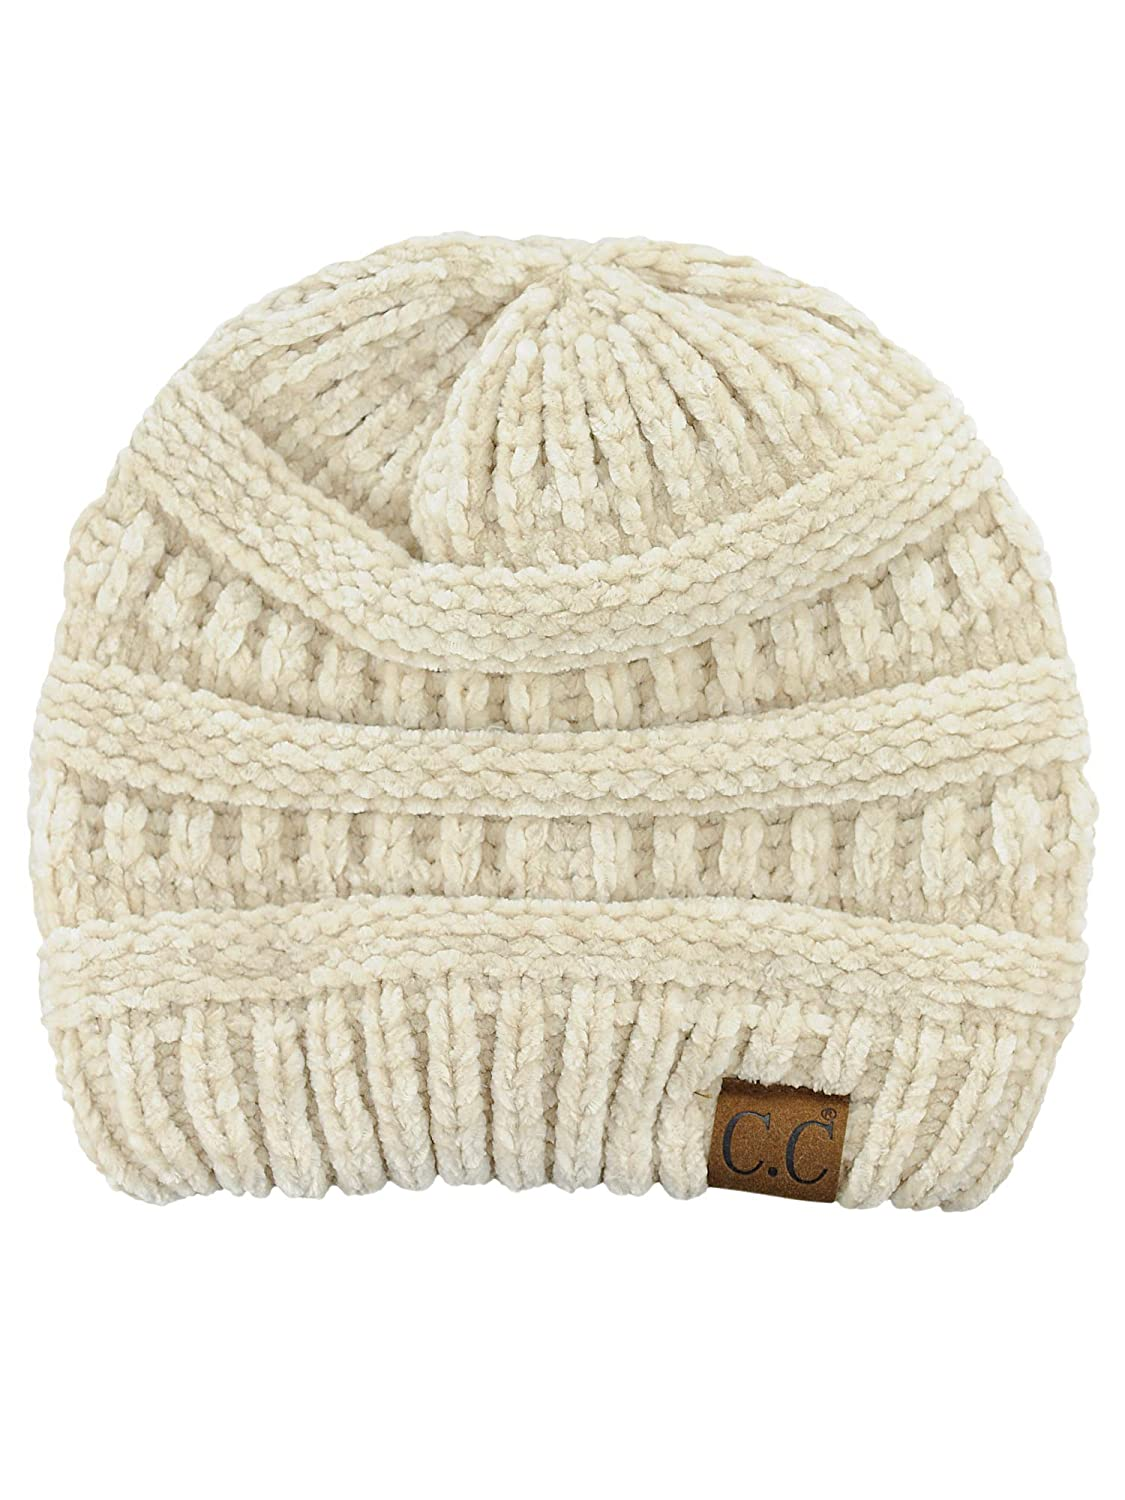 f7221214dfe91 C.C Women s Chenille Soft Warm Thick Knit Beanie Cap Hat-Beige at ...